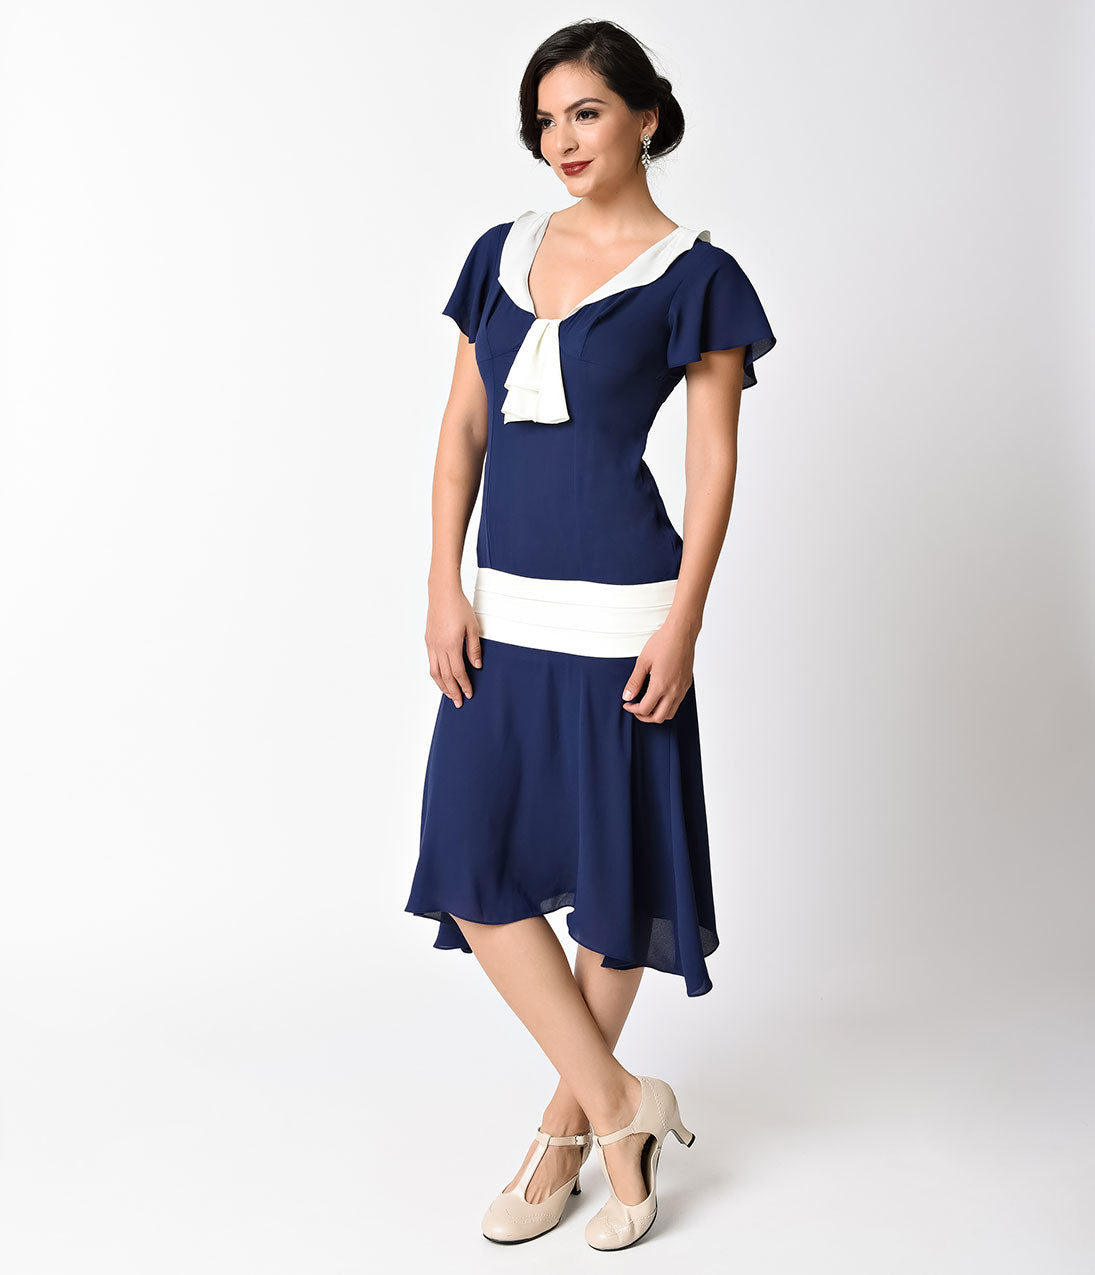 1920s Fashion & Clothing | Roaring 20s Attire Unique Vintage 1920S Style Navy Blue  Ivory Wilshire Chiffon Flapper Day Dress $78.00 AT vintagedancer.com